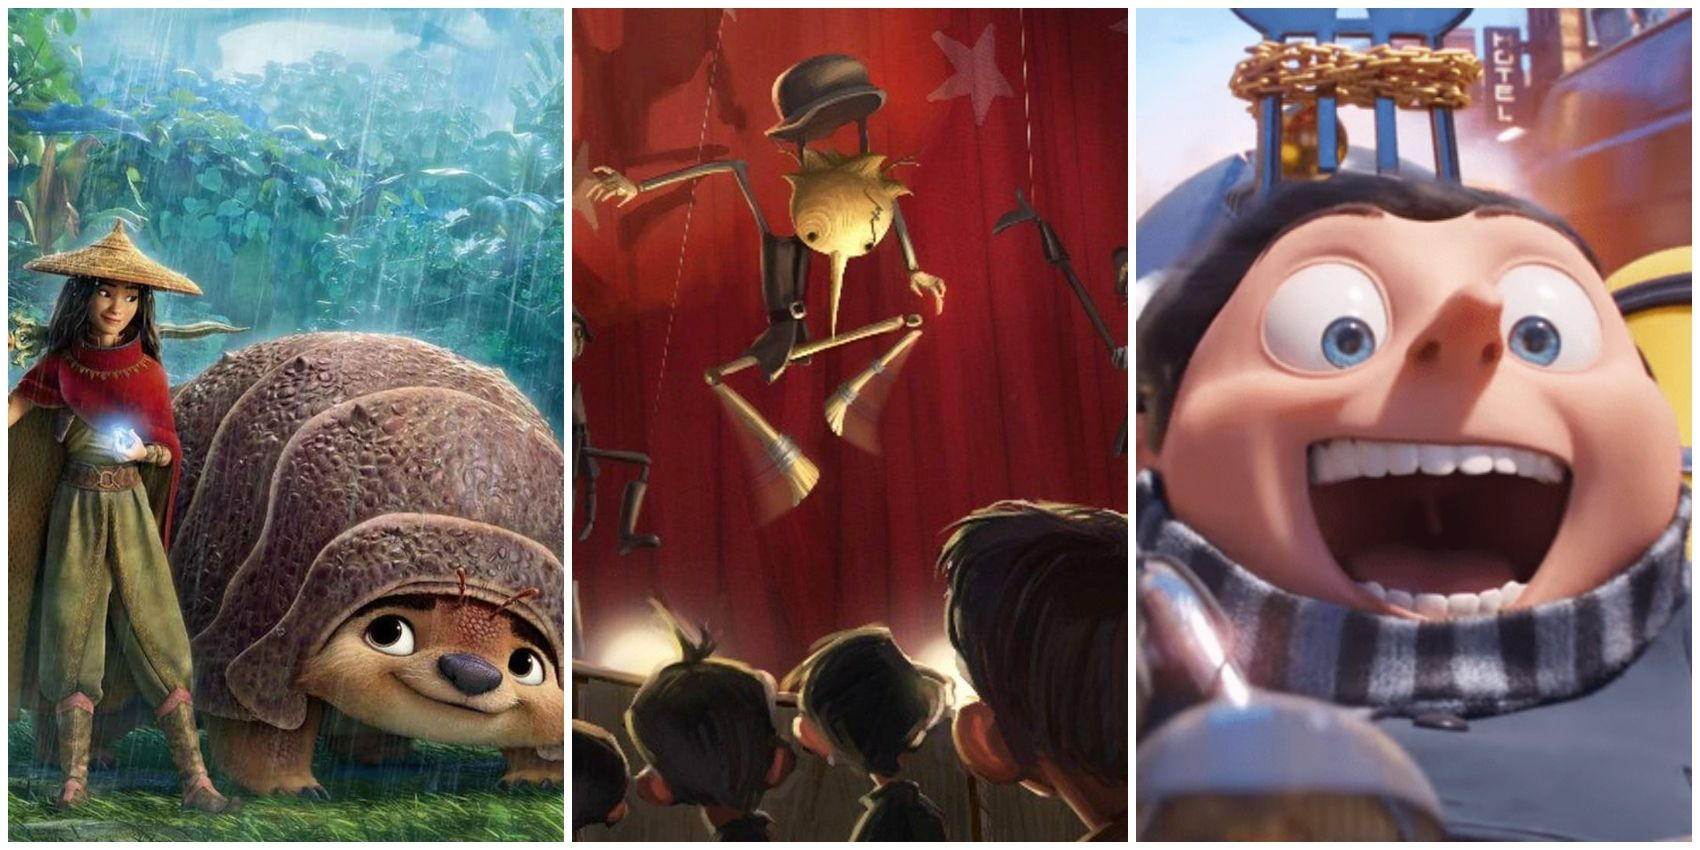 The 10 Most-Anticipated Animated Movies Of 2021 (According To Their IMDb Popularity)